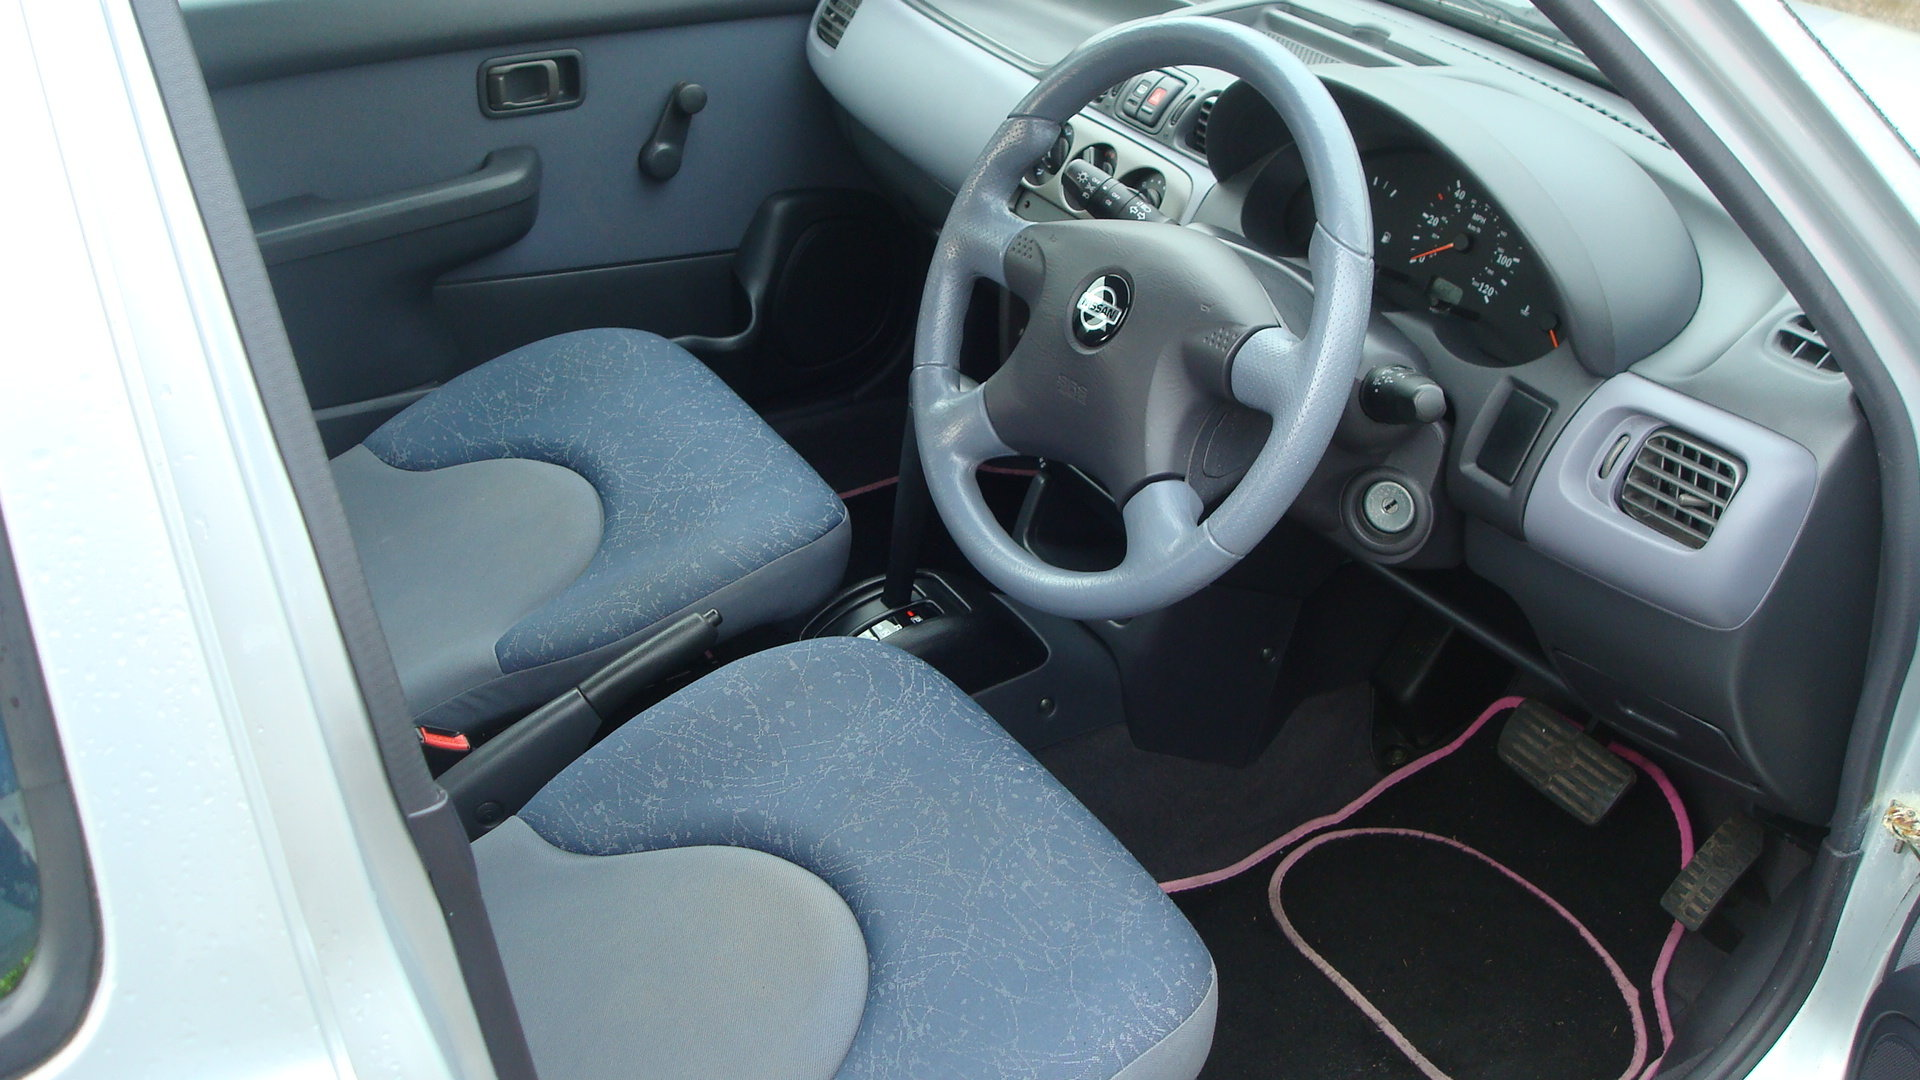 2002 Nissan Micra 1.0 Tempest Auto SOLD (picture 5 of 6)